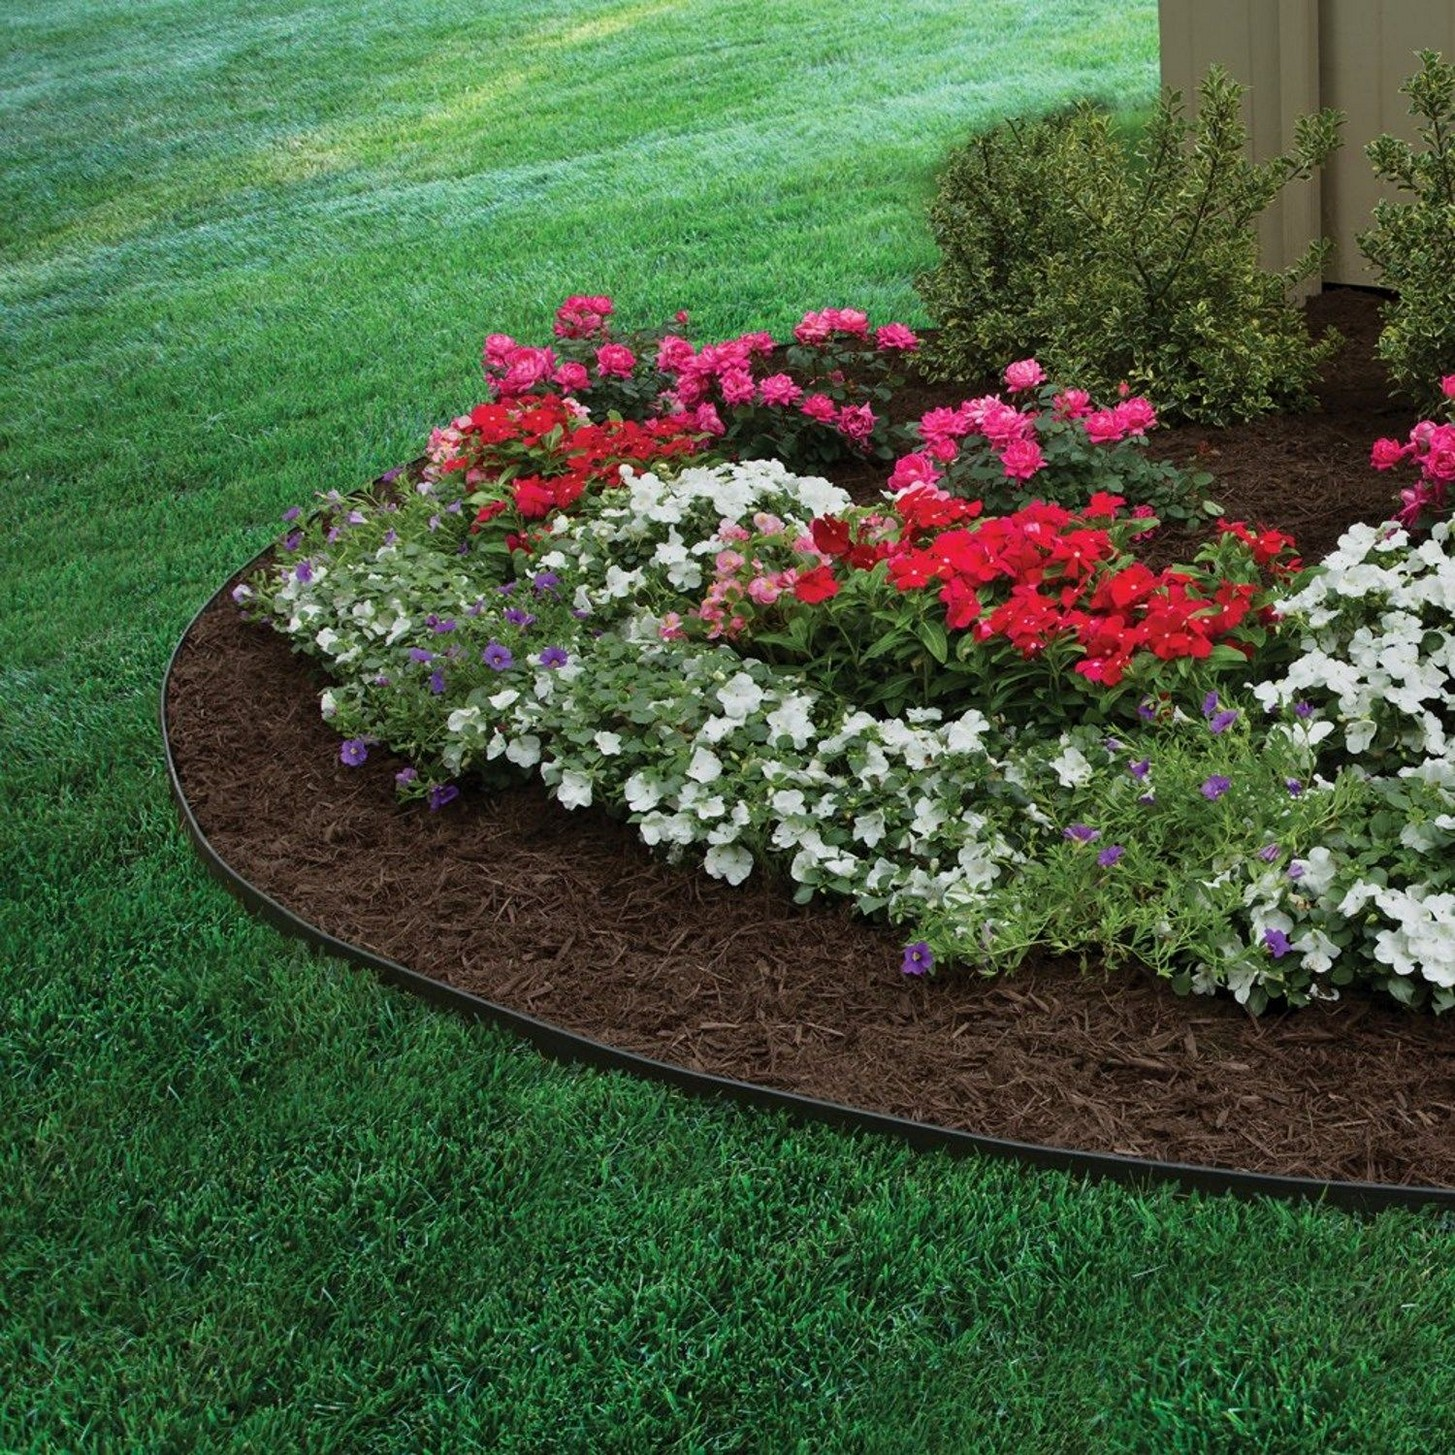 Home Depot Lawn and Garden | Landscape Edging Ideas | Landscaping Edger